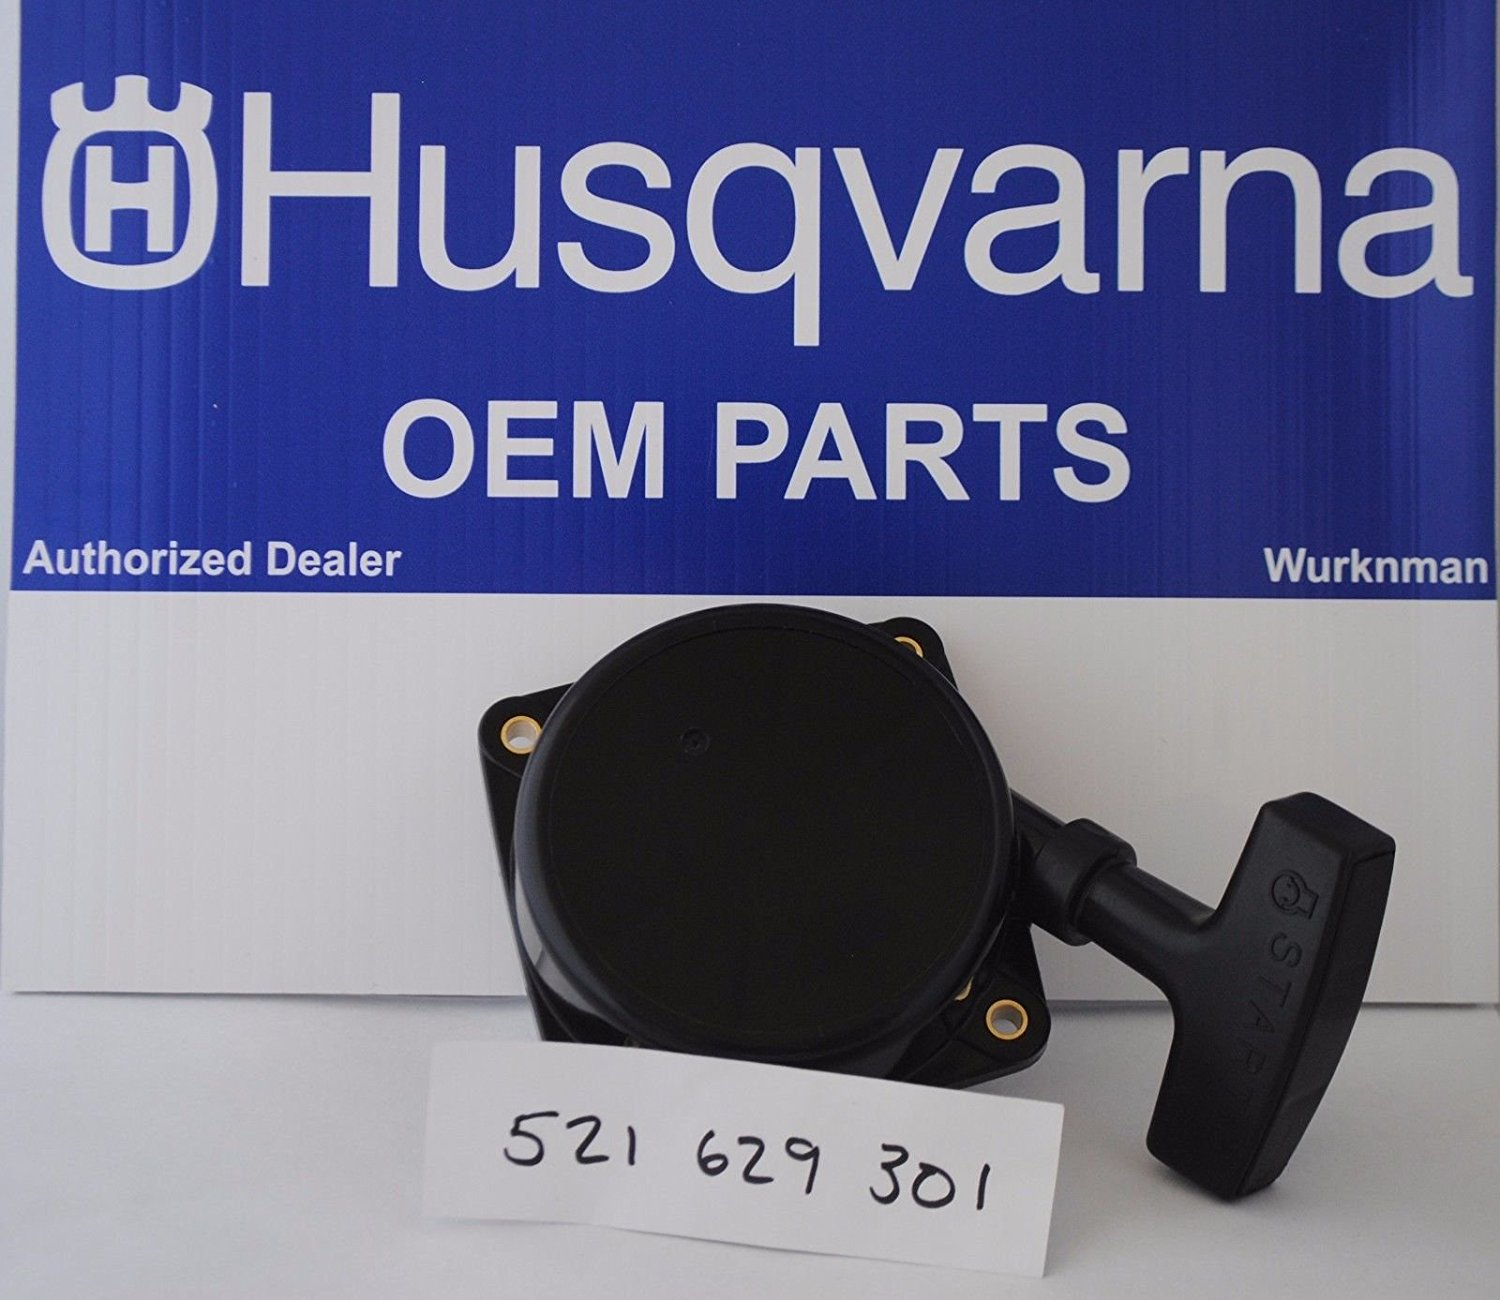 Cheap Redmax Pole Saw Find Deals On Line At Alibabacom Fuel Filter Get Quotations Oem Husqvarna 521629301 Recoil Starter For Many Models